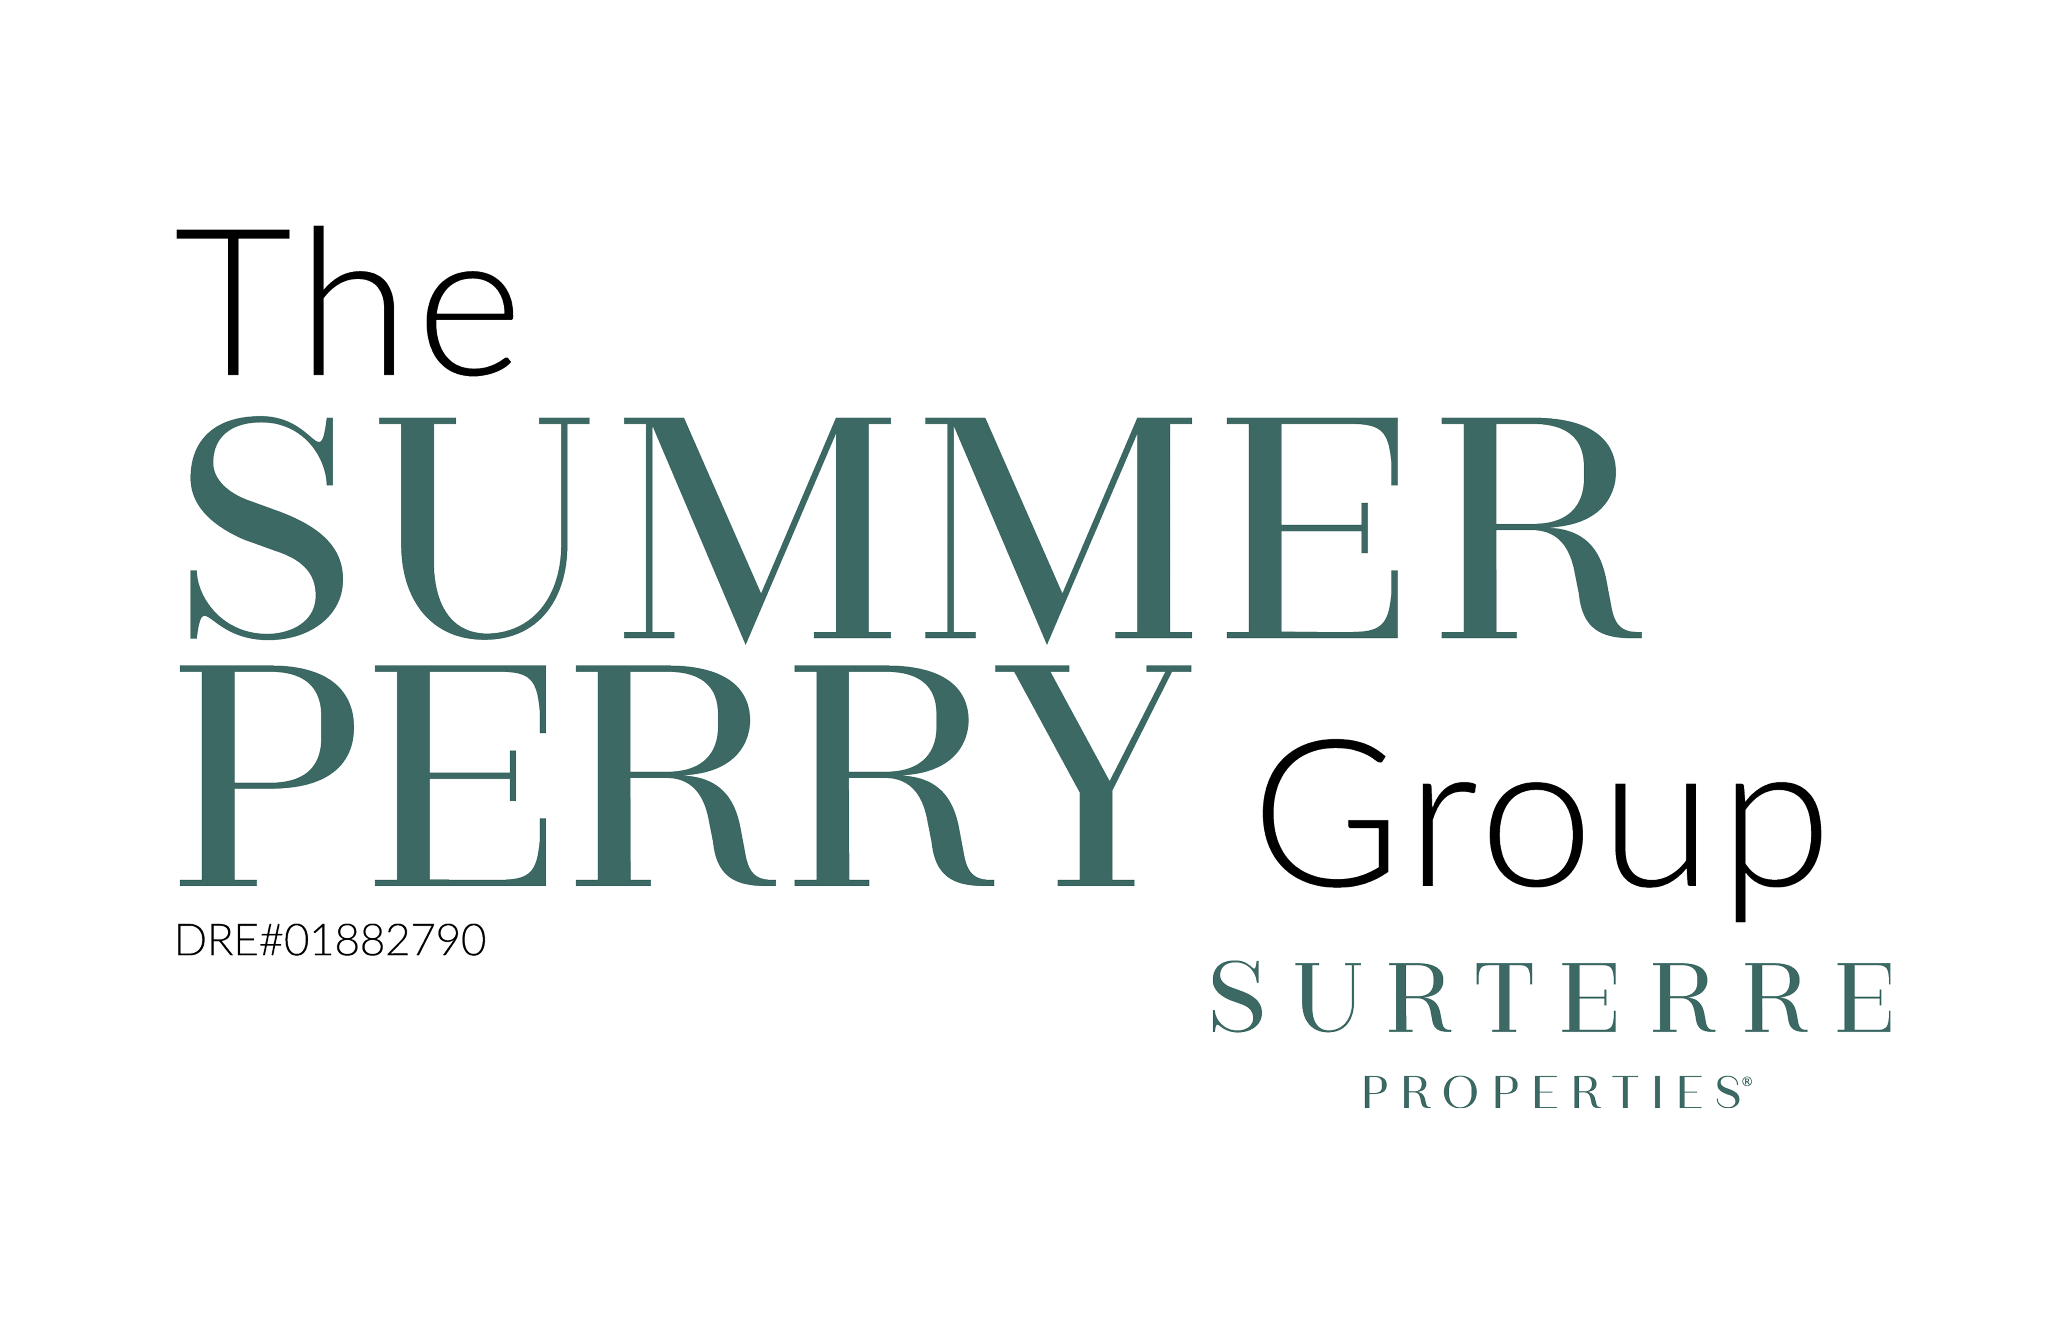 The Summer Perry Group